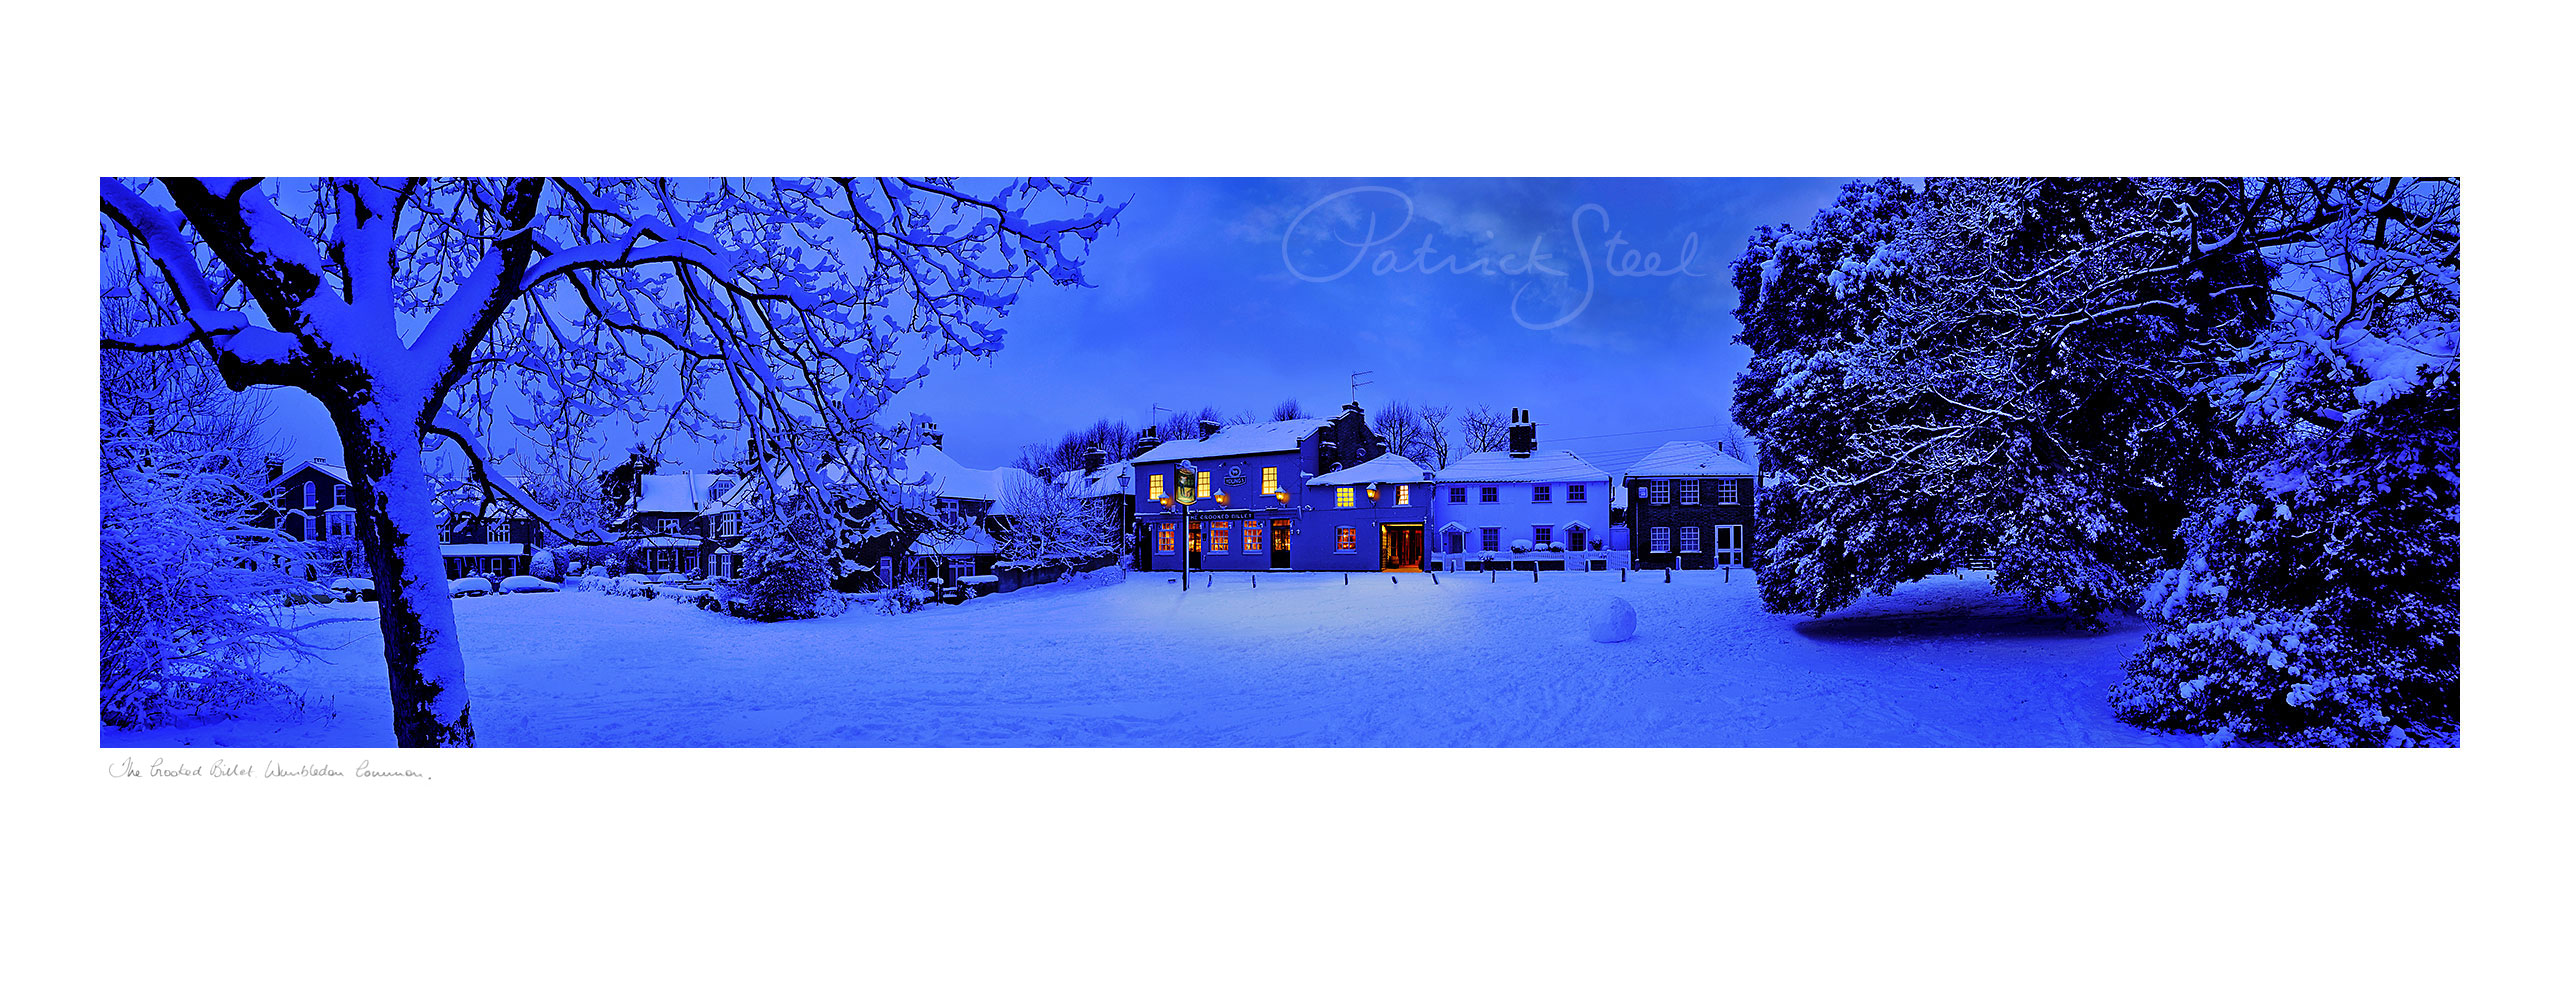 Title: The Crooked Billet in snow, Wimbledon Common | <a href=